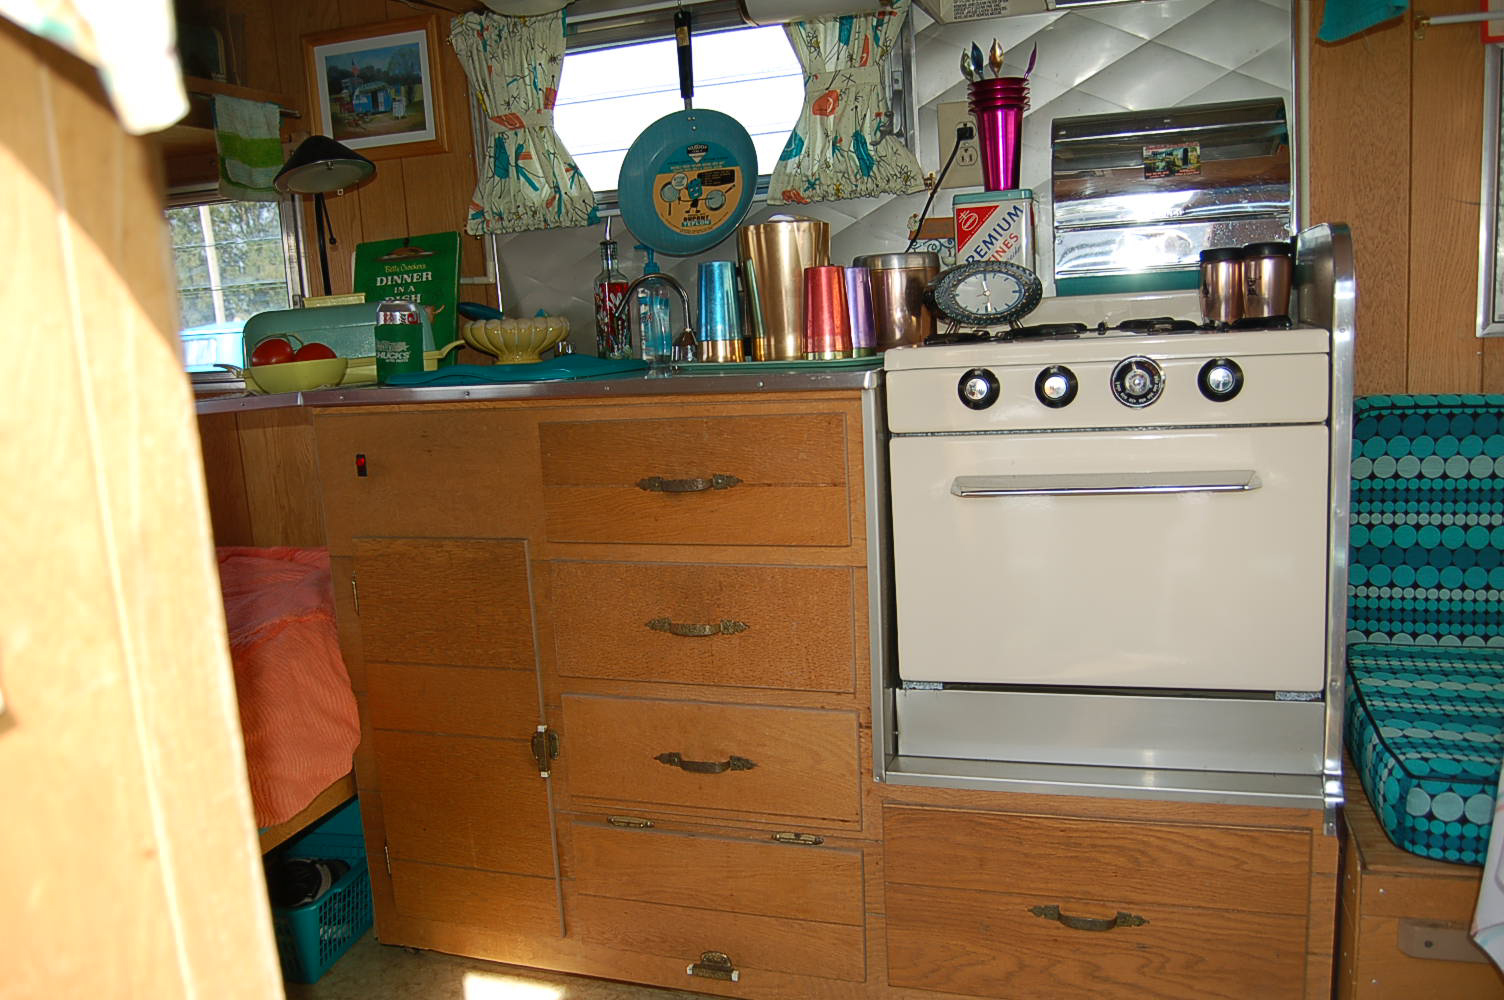 Picture Shows Restored Oven And Kitchen Countertop Cabinet In Vintage 1965  Aloha Trailer. 1965 Aloha Travel Trailer